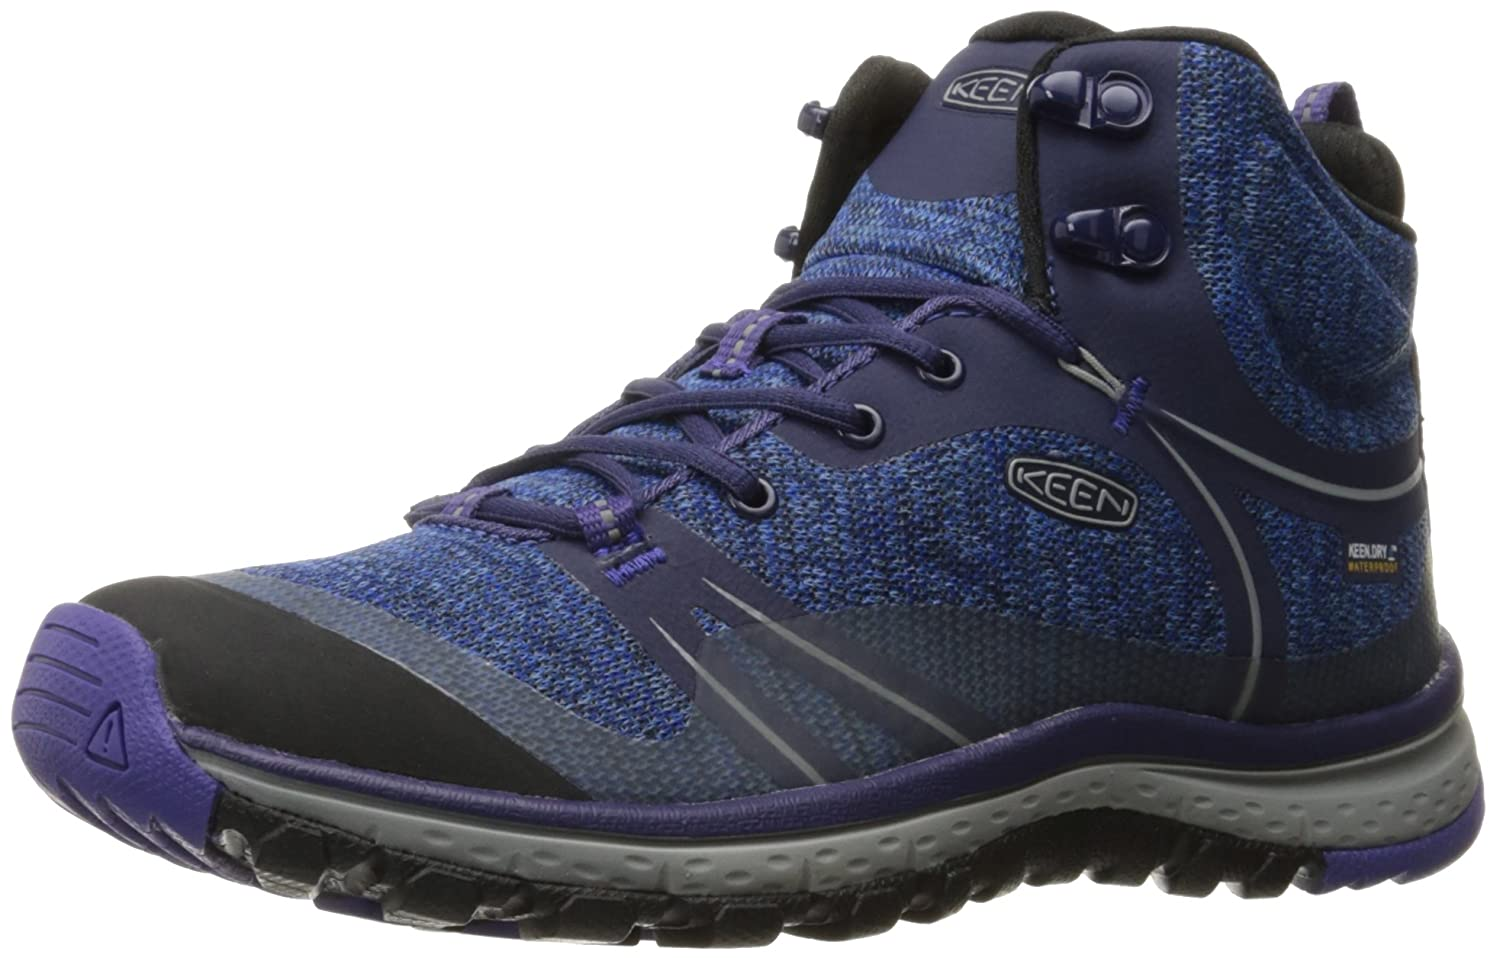 KEEN Women's Terradora Mid Waterproof Hiking Shoe B01H8GI08W 8 B(M) US|Astral Aura/Liberty